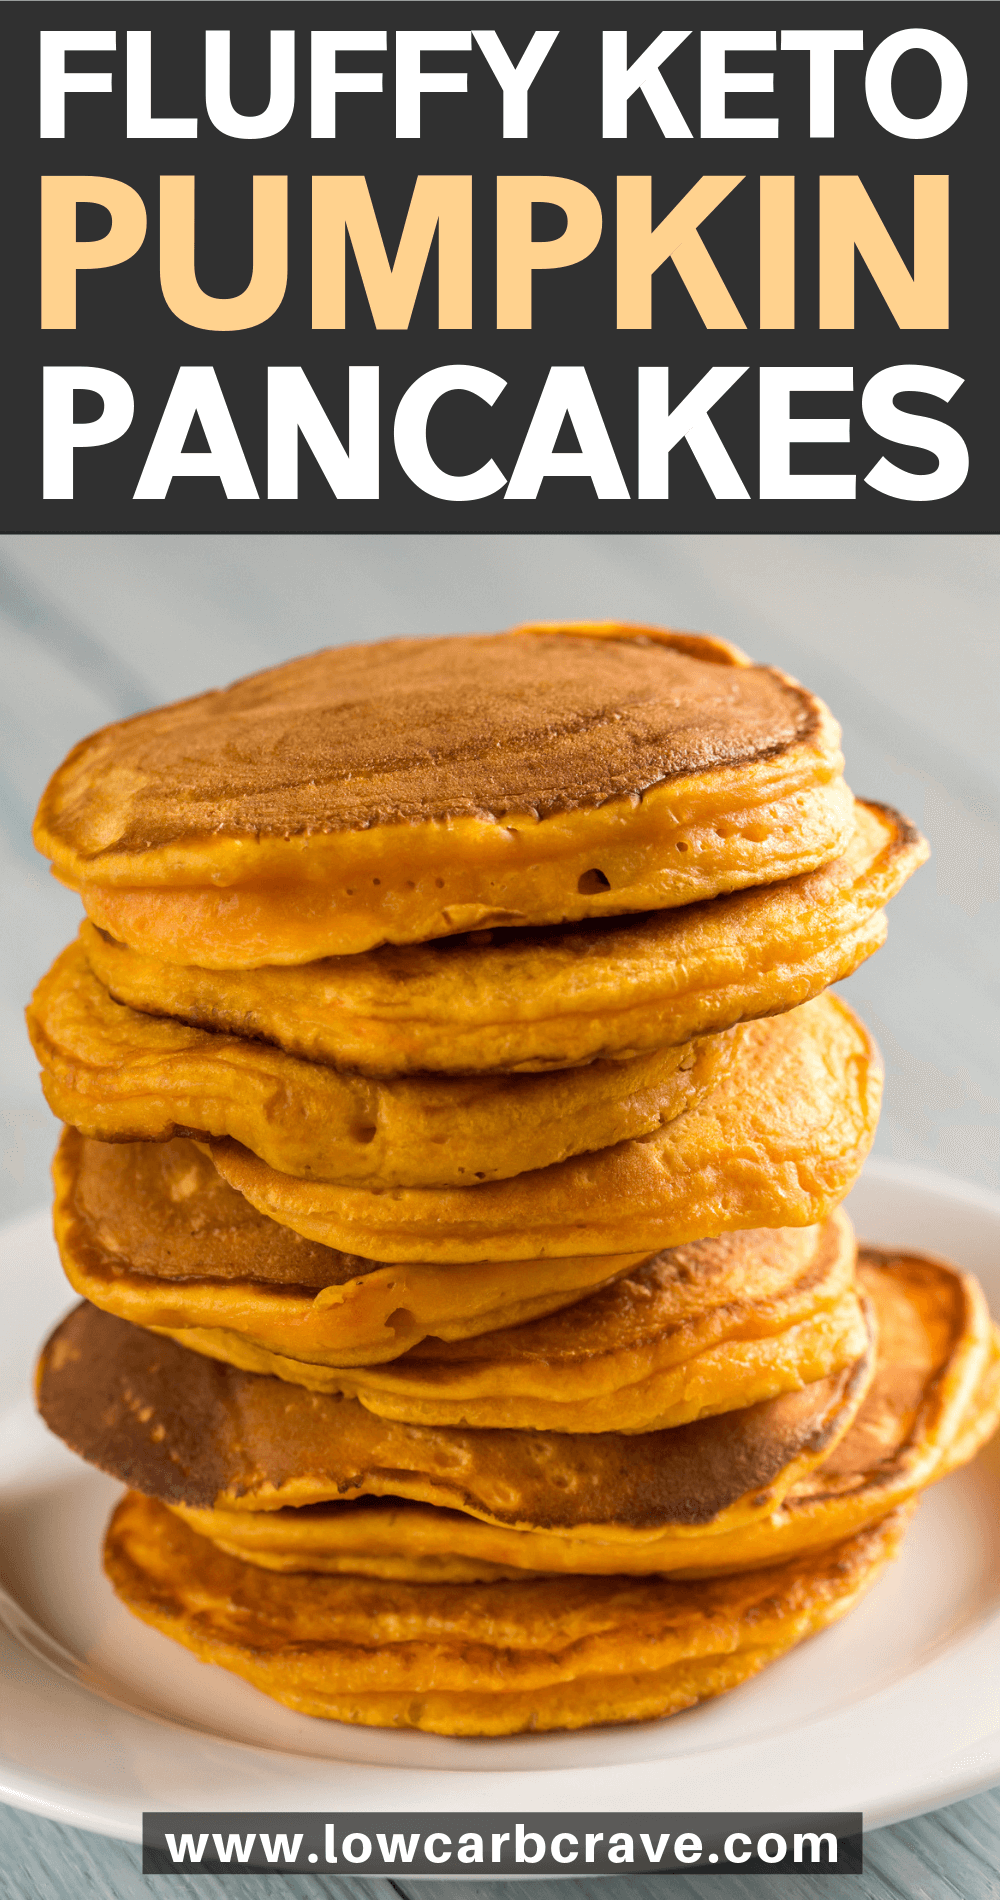 Fluffy Homemade Keto Pumpkin Pancakes